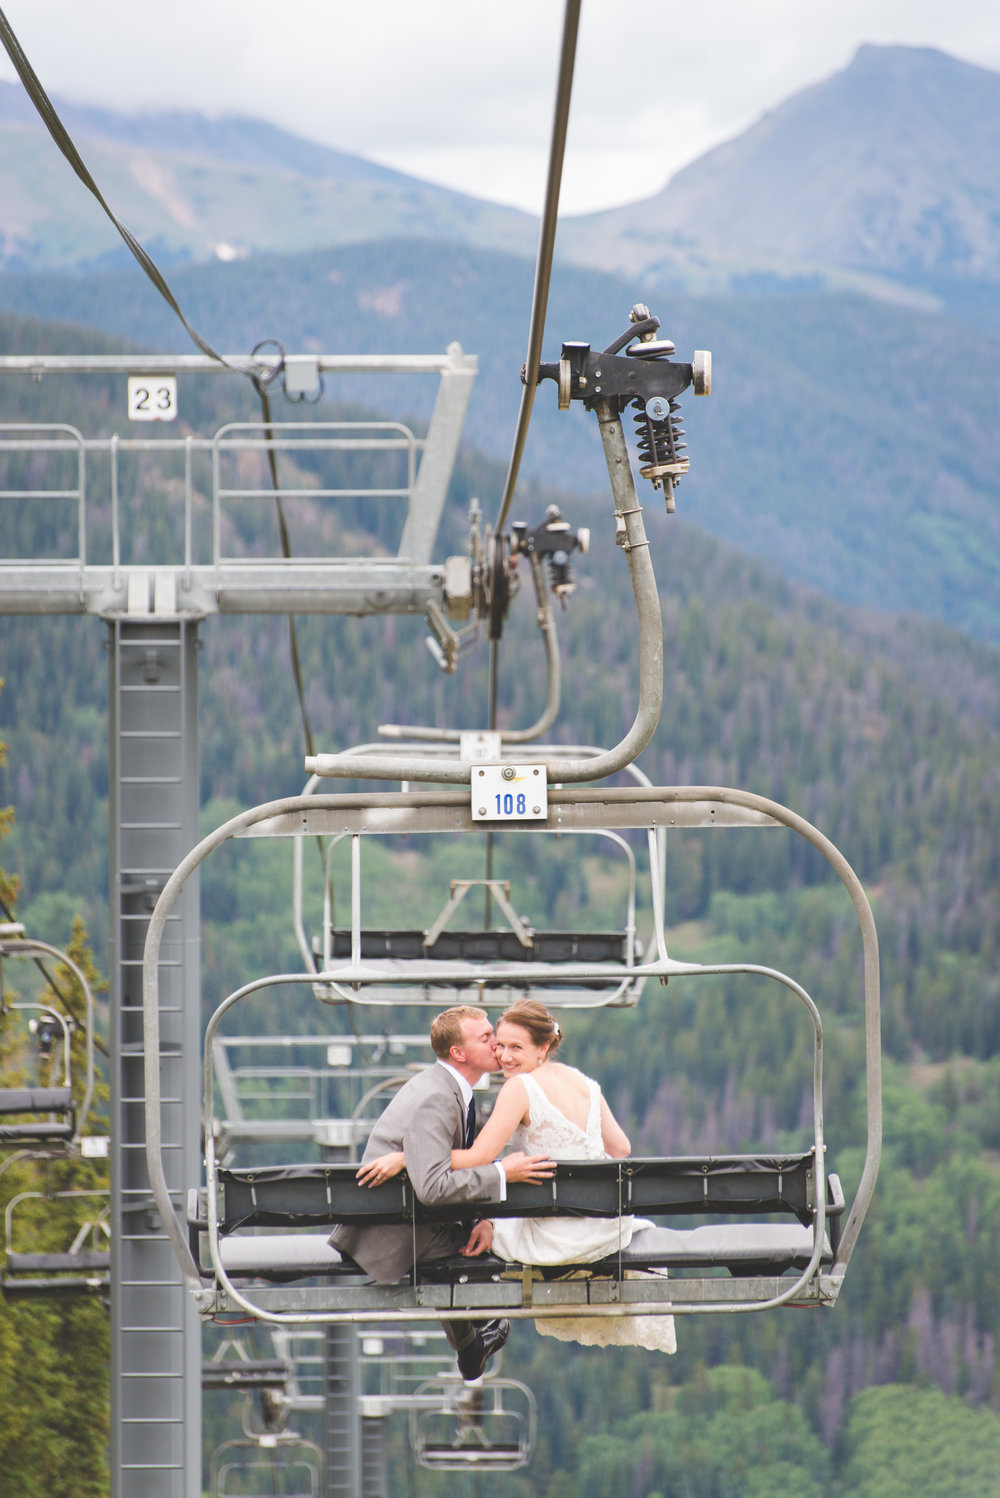 here's the best way to start your new adventure of marriage: take a chair lift ride down from your mountain top ceremony!